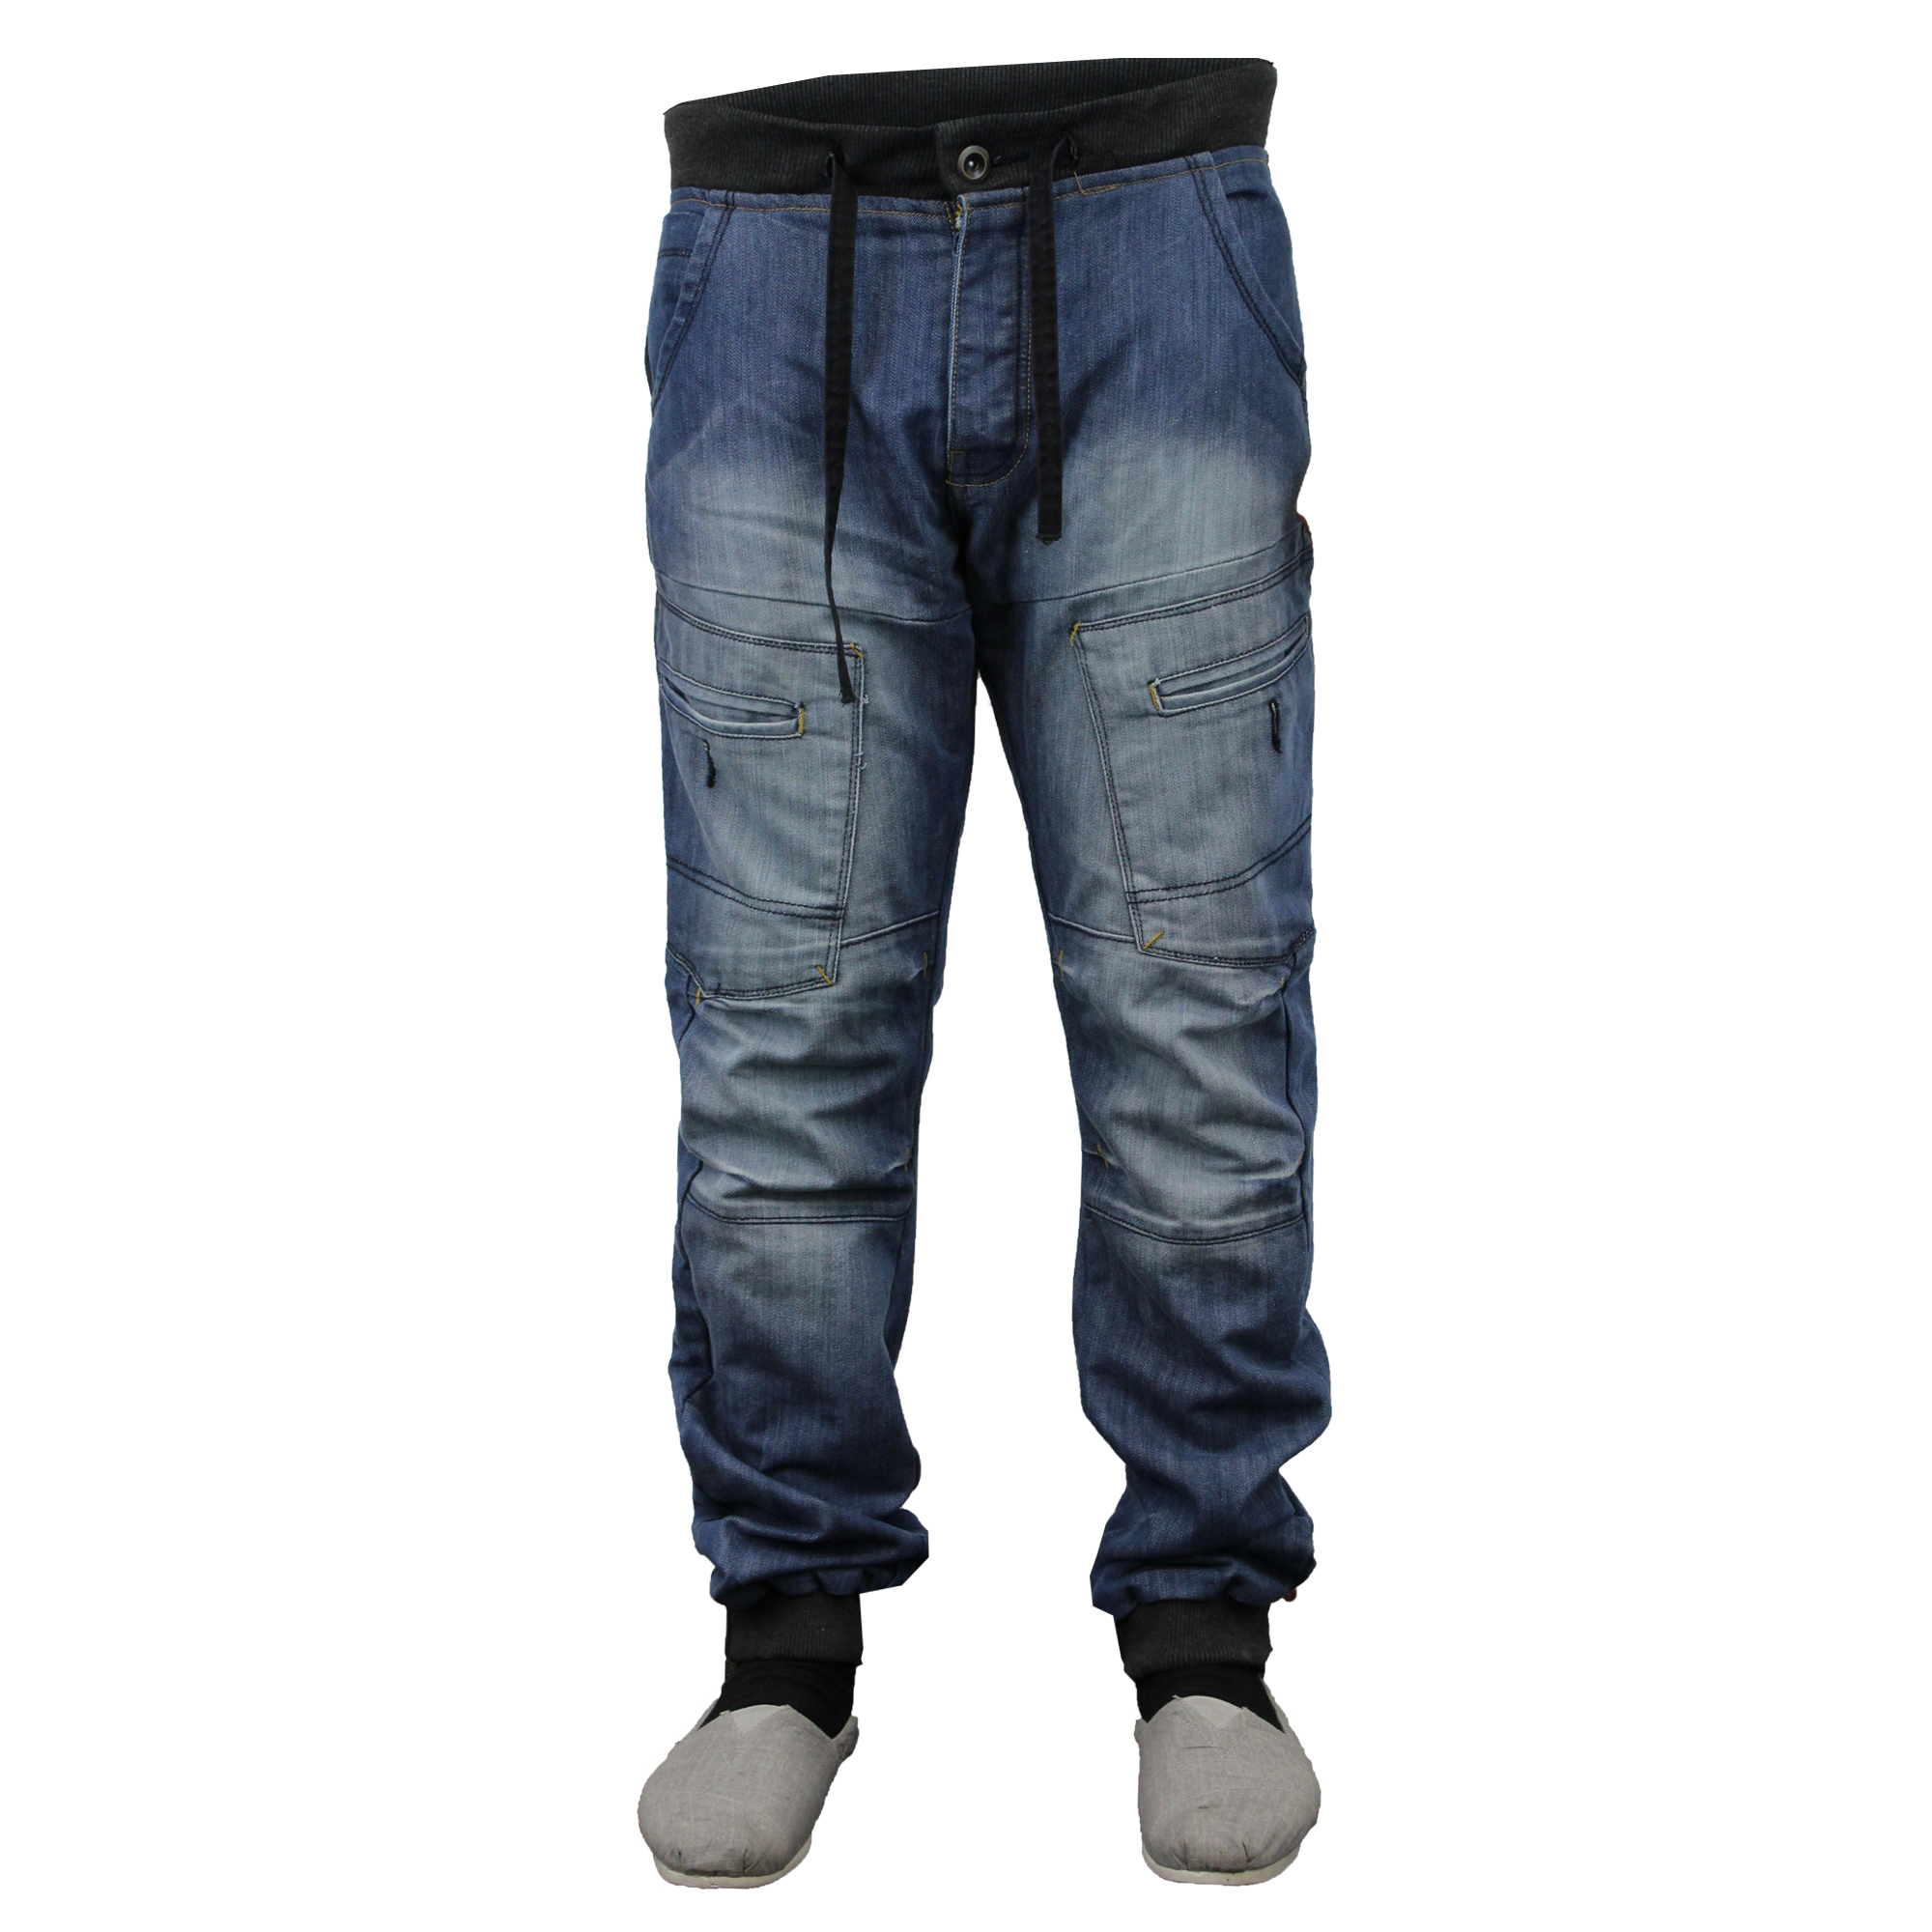 See all results for mens cuffed pants. ITALY MORN. Men's Chino Jogger Pants. from $ 14 90 Prime. out of 5 stars Match. Men's Chino Jogger Pants. from $ 17 99 Prime. out of 5 stars Victorious. Men's Vintage Drop Crotch Denim Jogger Pants. from $ 24 87 Prime. out of 5 stars Southpole.